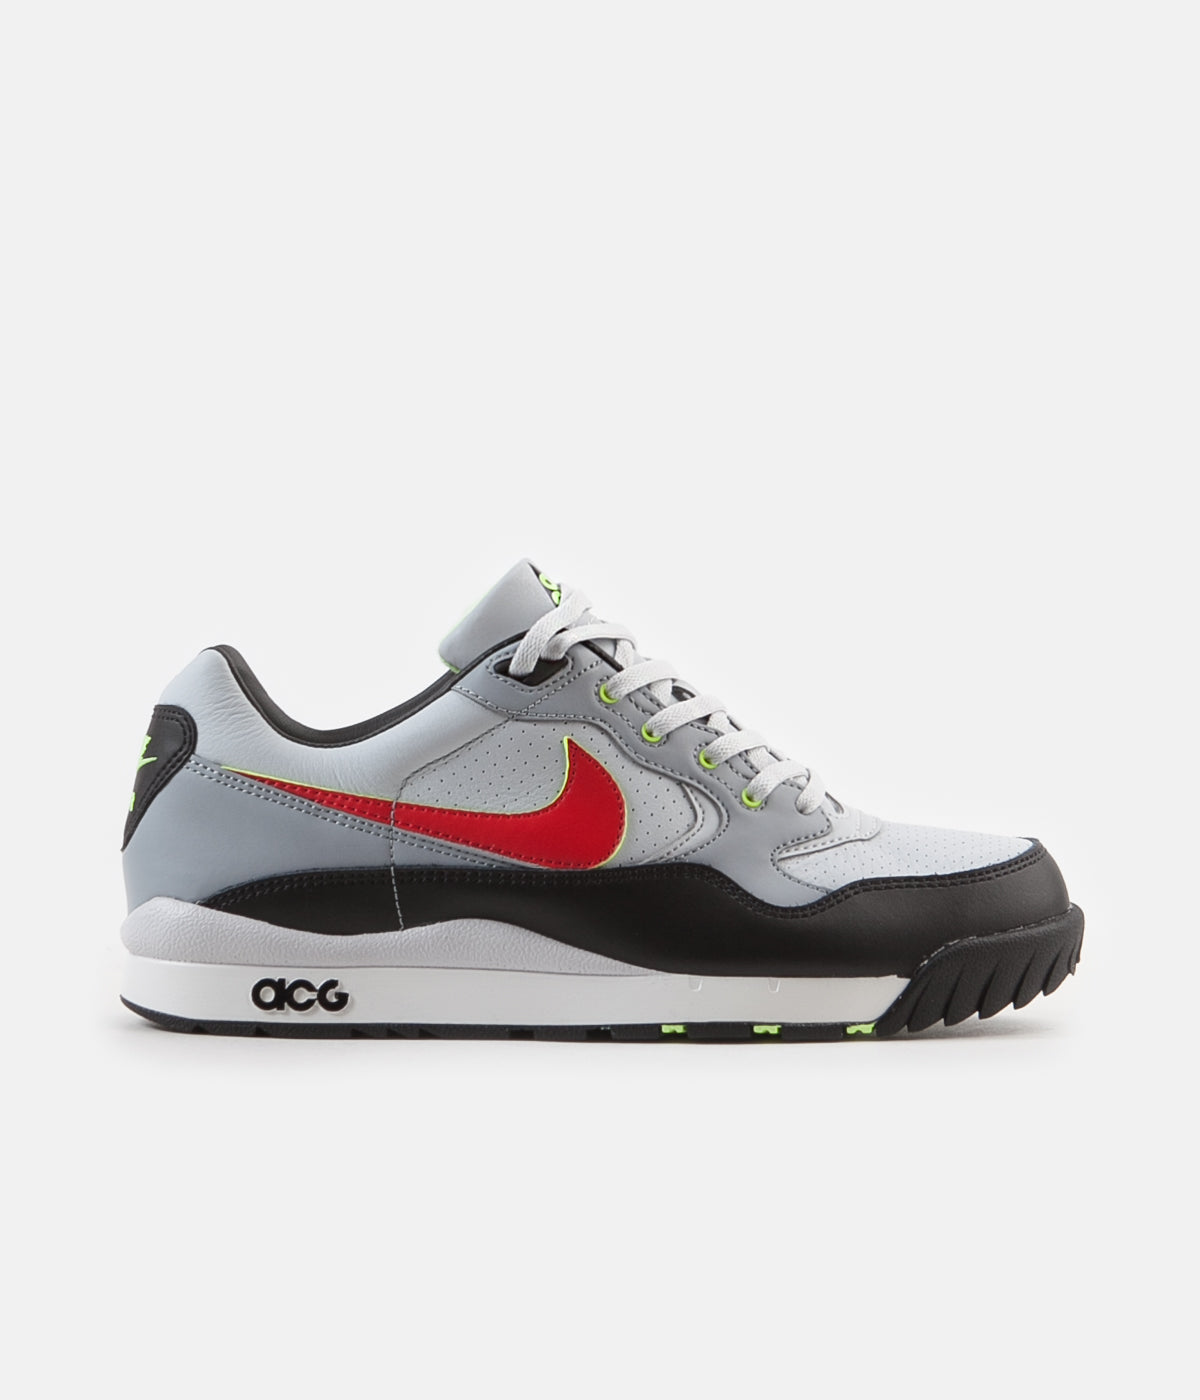 Profesor de escuela Eliminar Pakistán  Nike ACG Air Wildwood Shoes - Pure Platinum / Comet Red - Mist Blue - |  Always in Colour